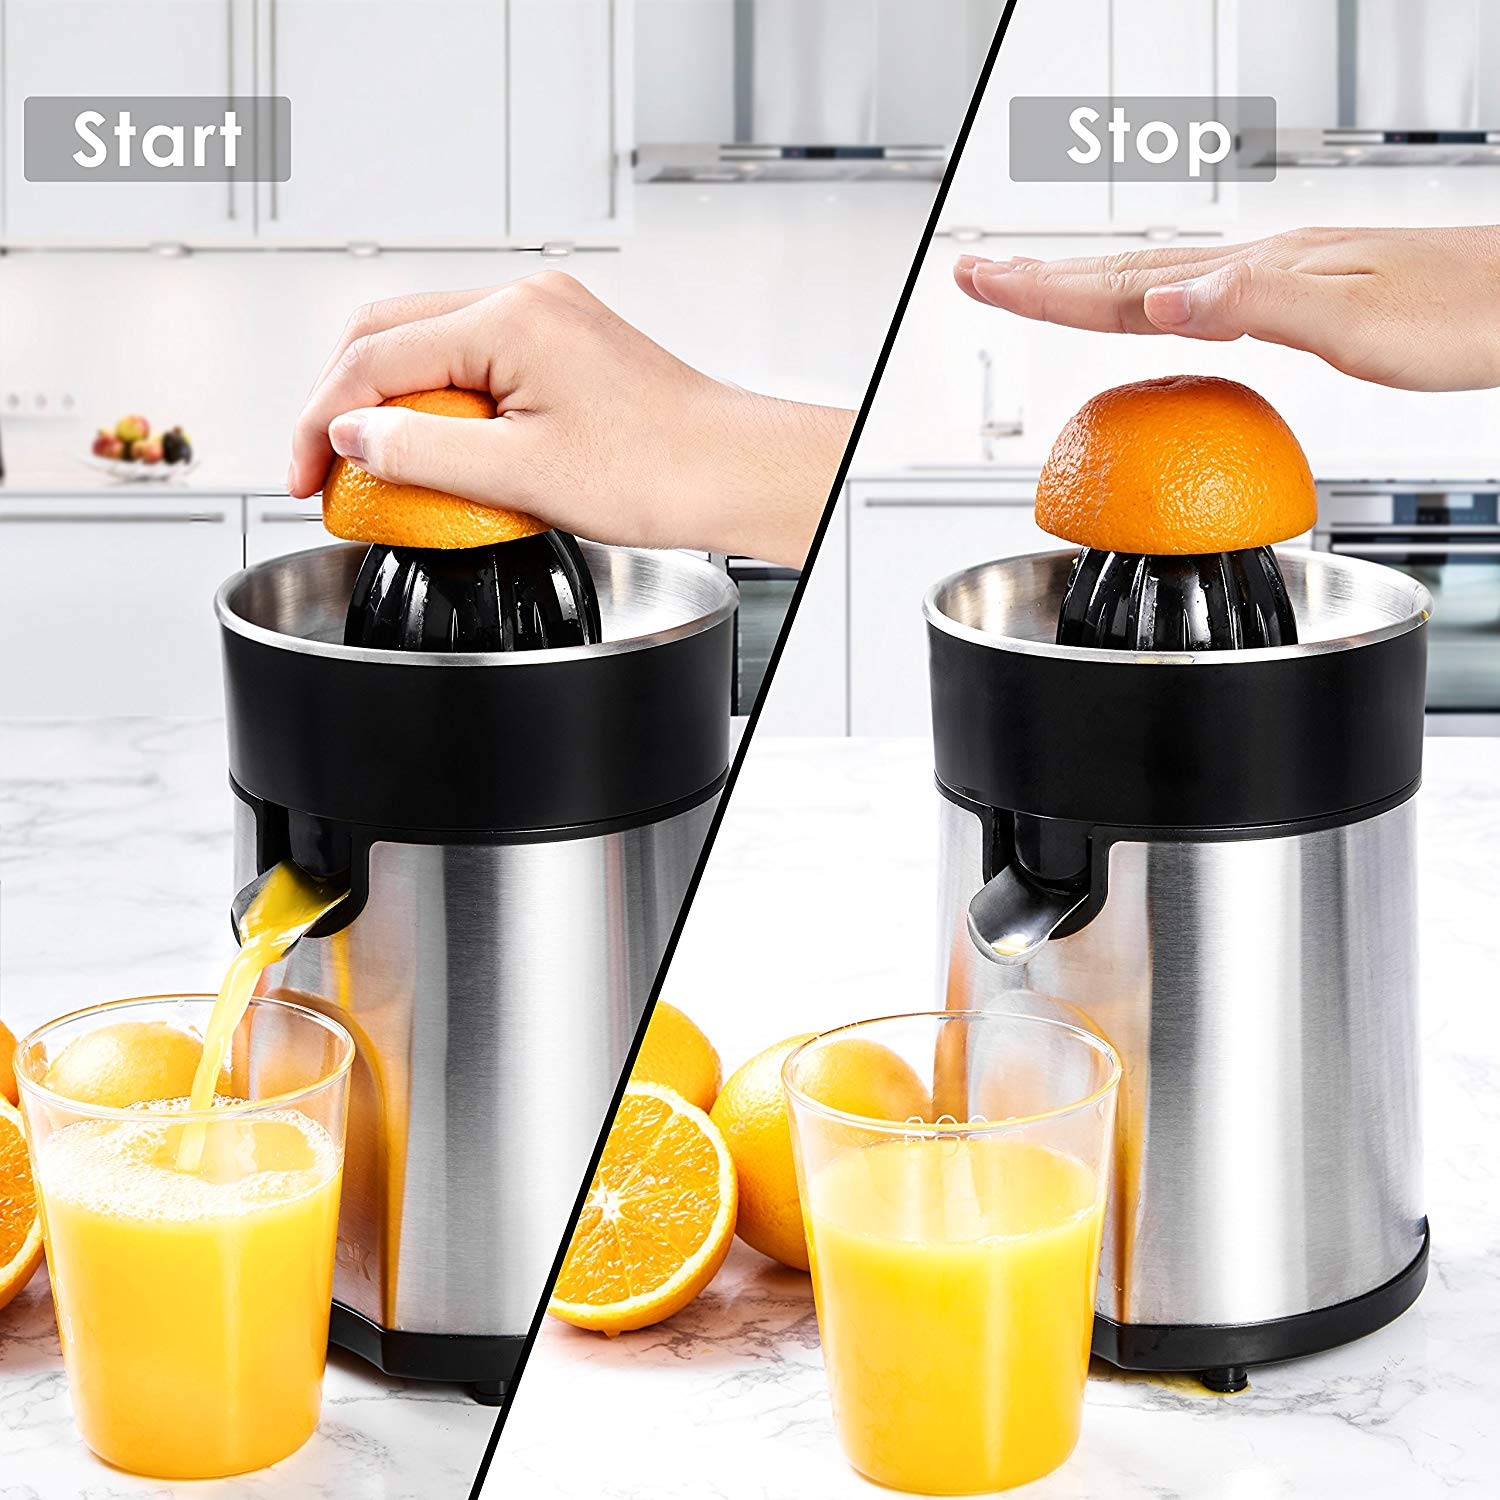 Aicok Citrus Juicer Electric Orange Juicer